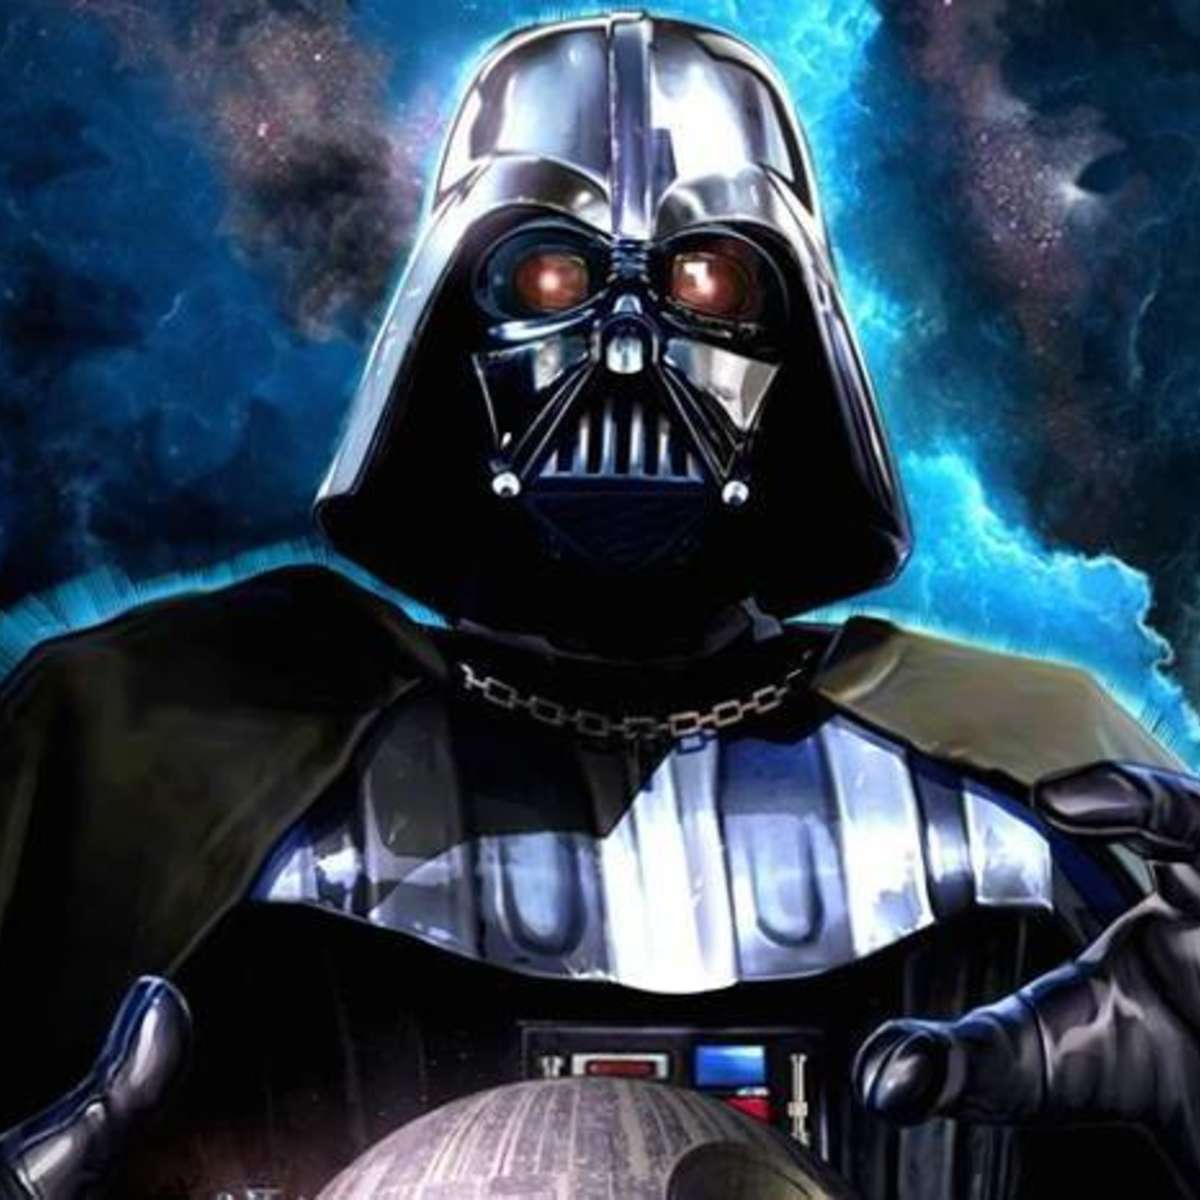 star-wars-1-darth-vader-comic-cover-art-by-greg-horn-1.jpg